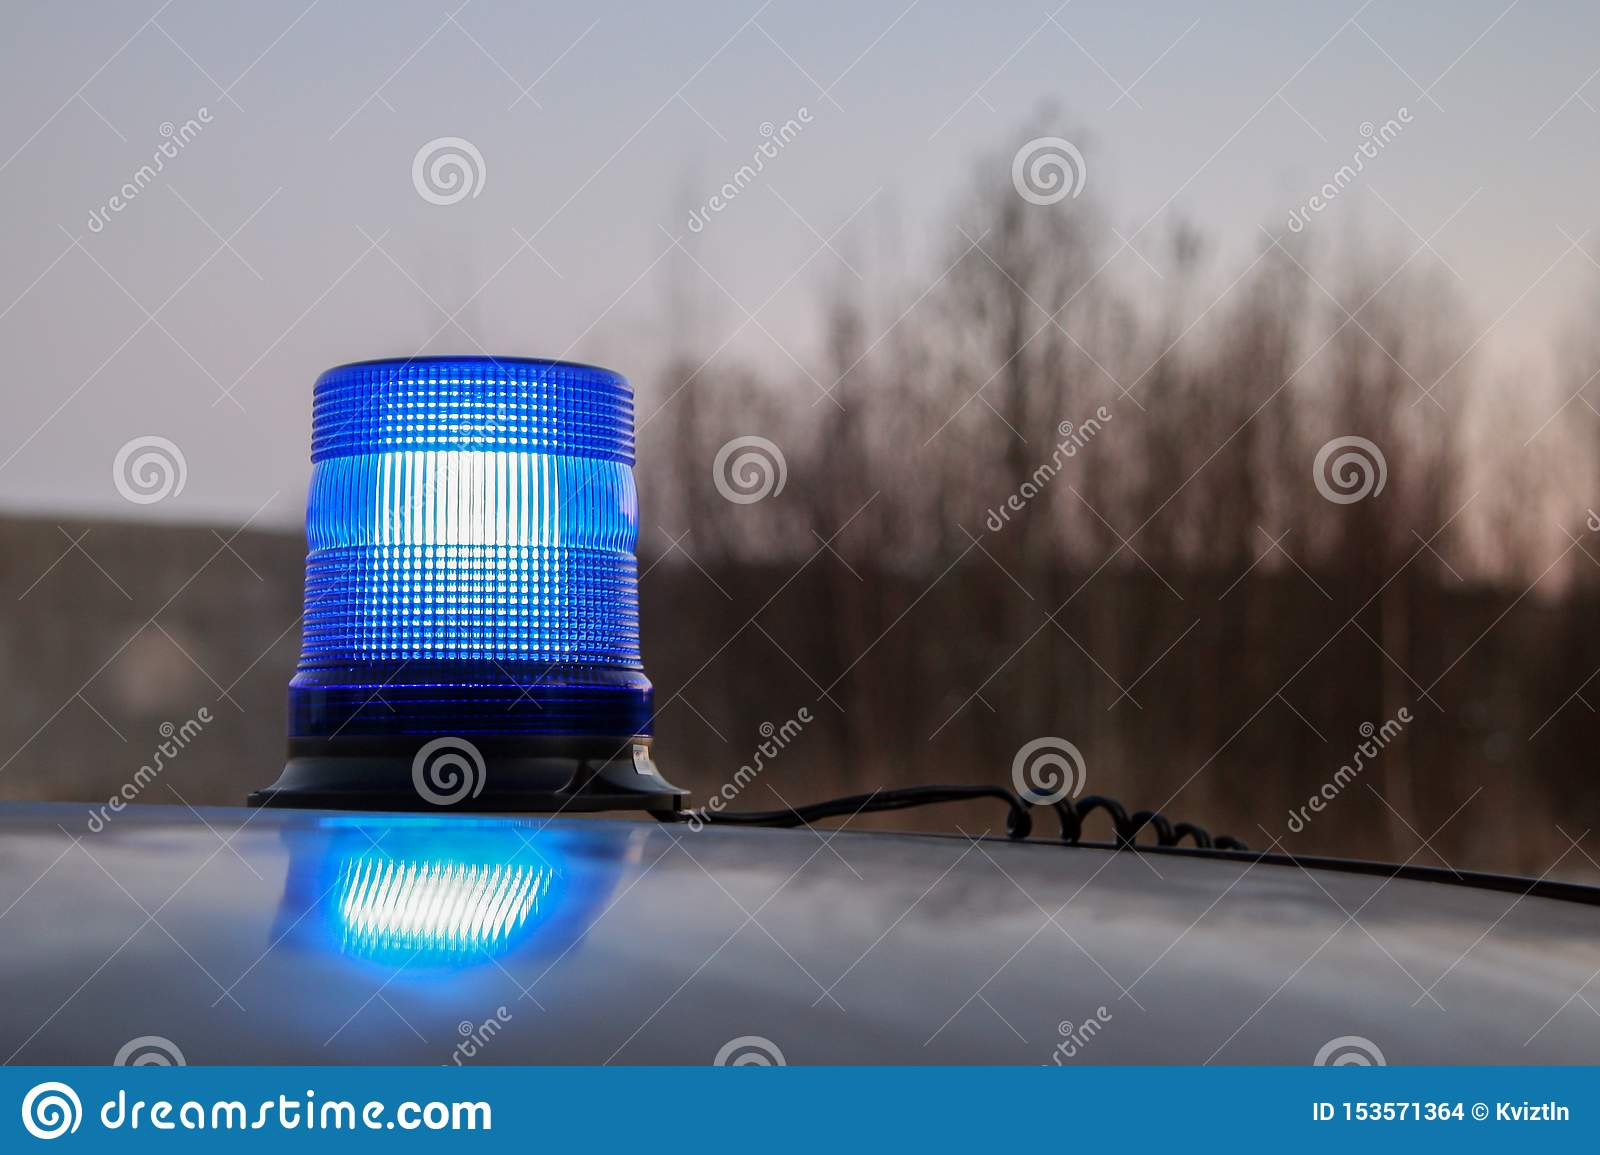 Working blue flasher on the roof of the car.